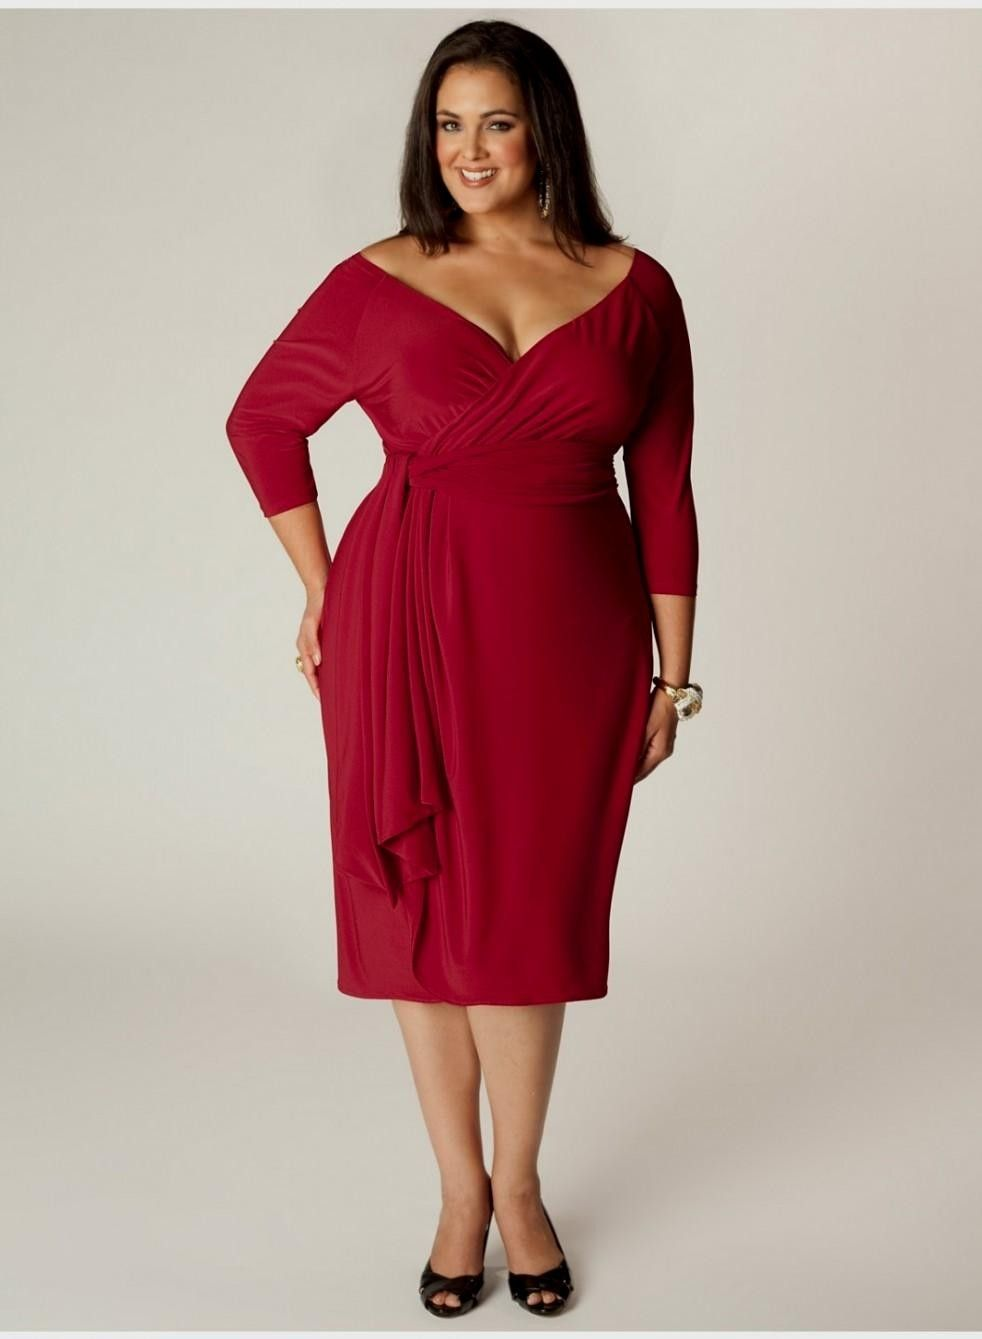 Lovely Plus Size Cocktail Dresses : Plus Size Cocktail Dress In Red ...